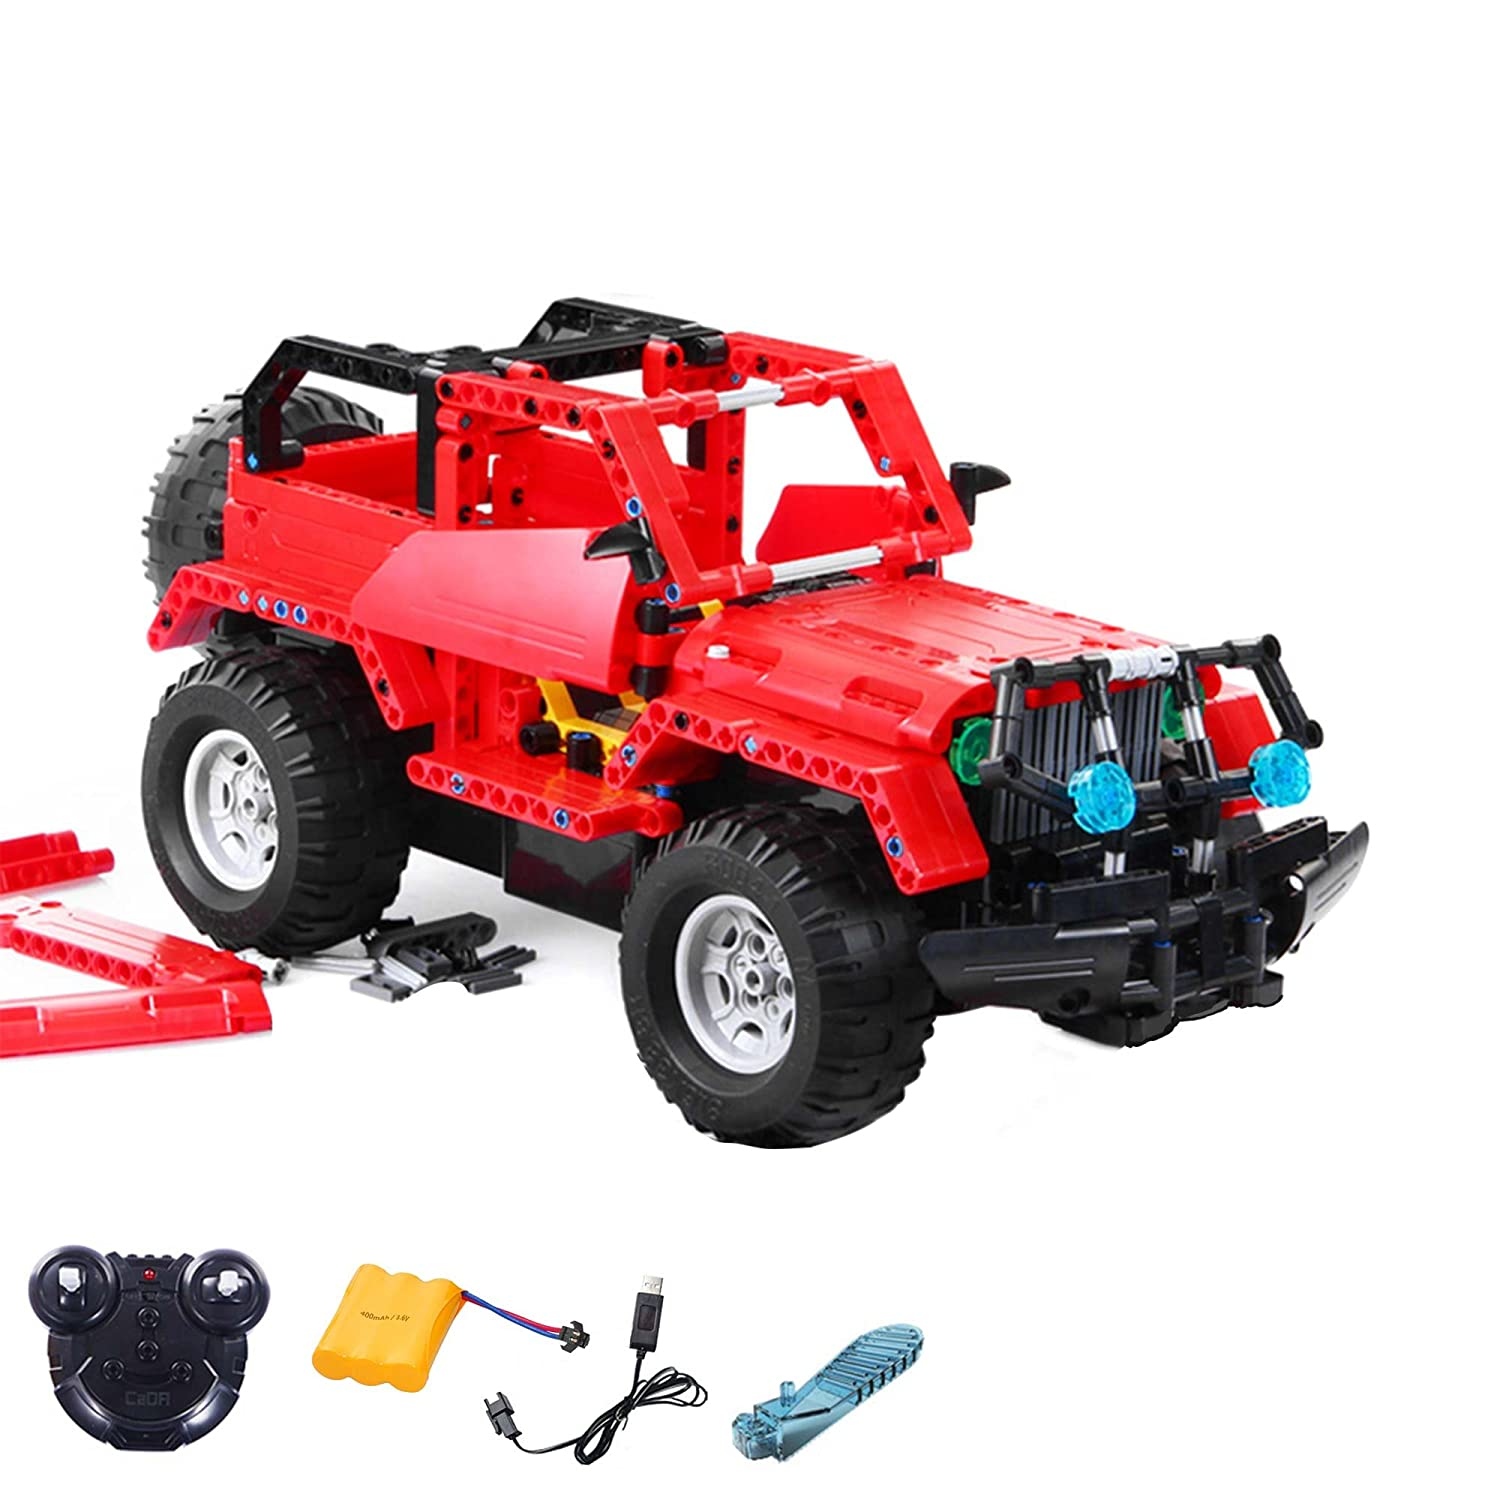 2.4GHz RC plug-in kit DIY remote-controlled 2in1 SUV Truck from building blocks DIY Build with 2.4GHz remote control, block building vehicle, car, car, complete set Incl. Battery and charger HSP HIMOTO